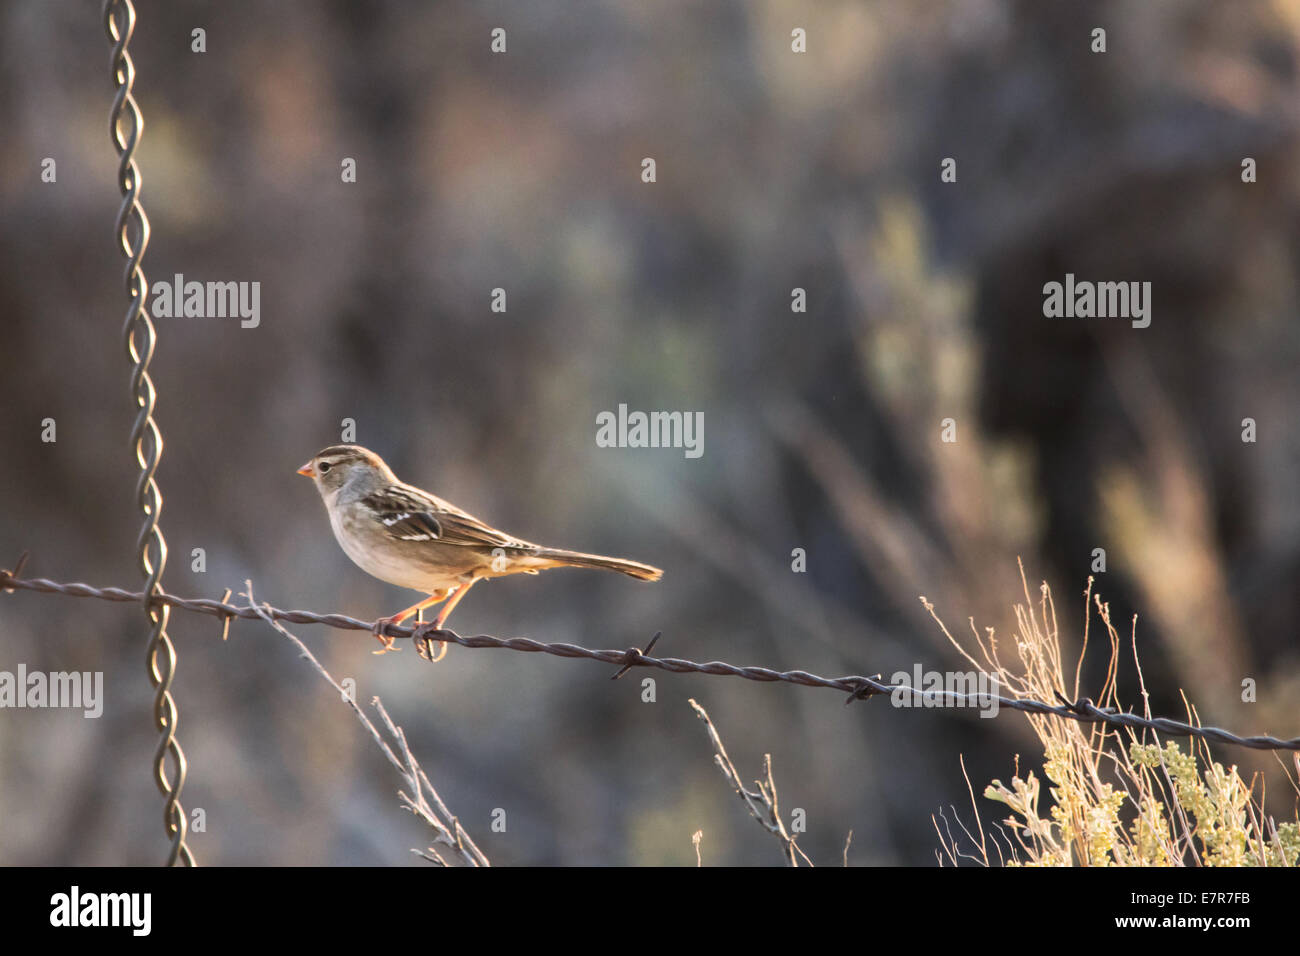 House sparrow on a barbed wire fence. - Stock Image